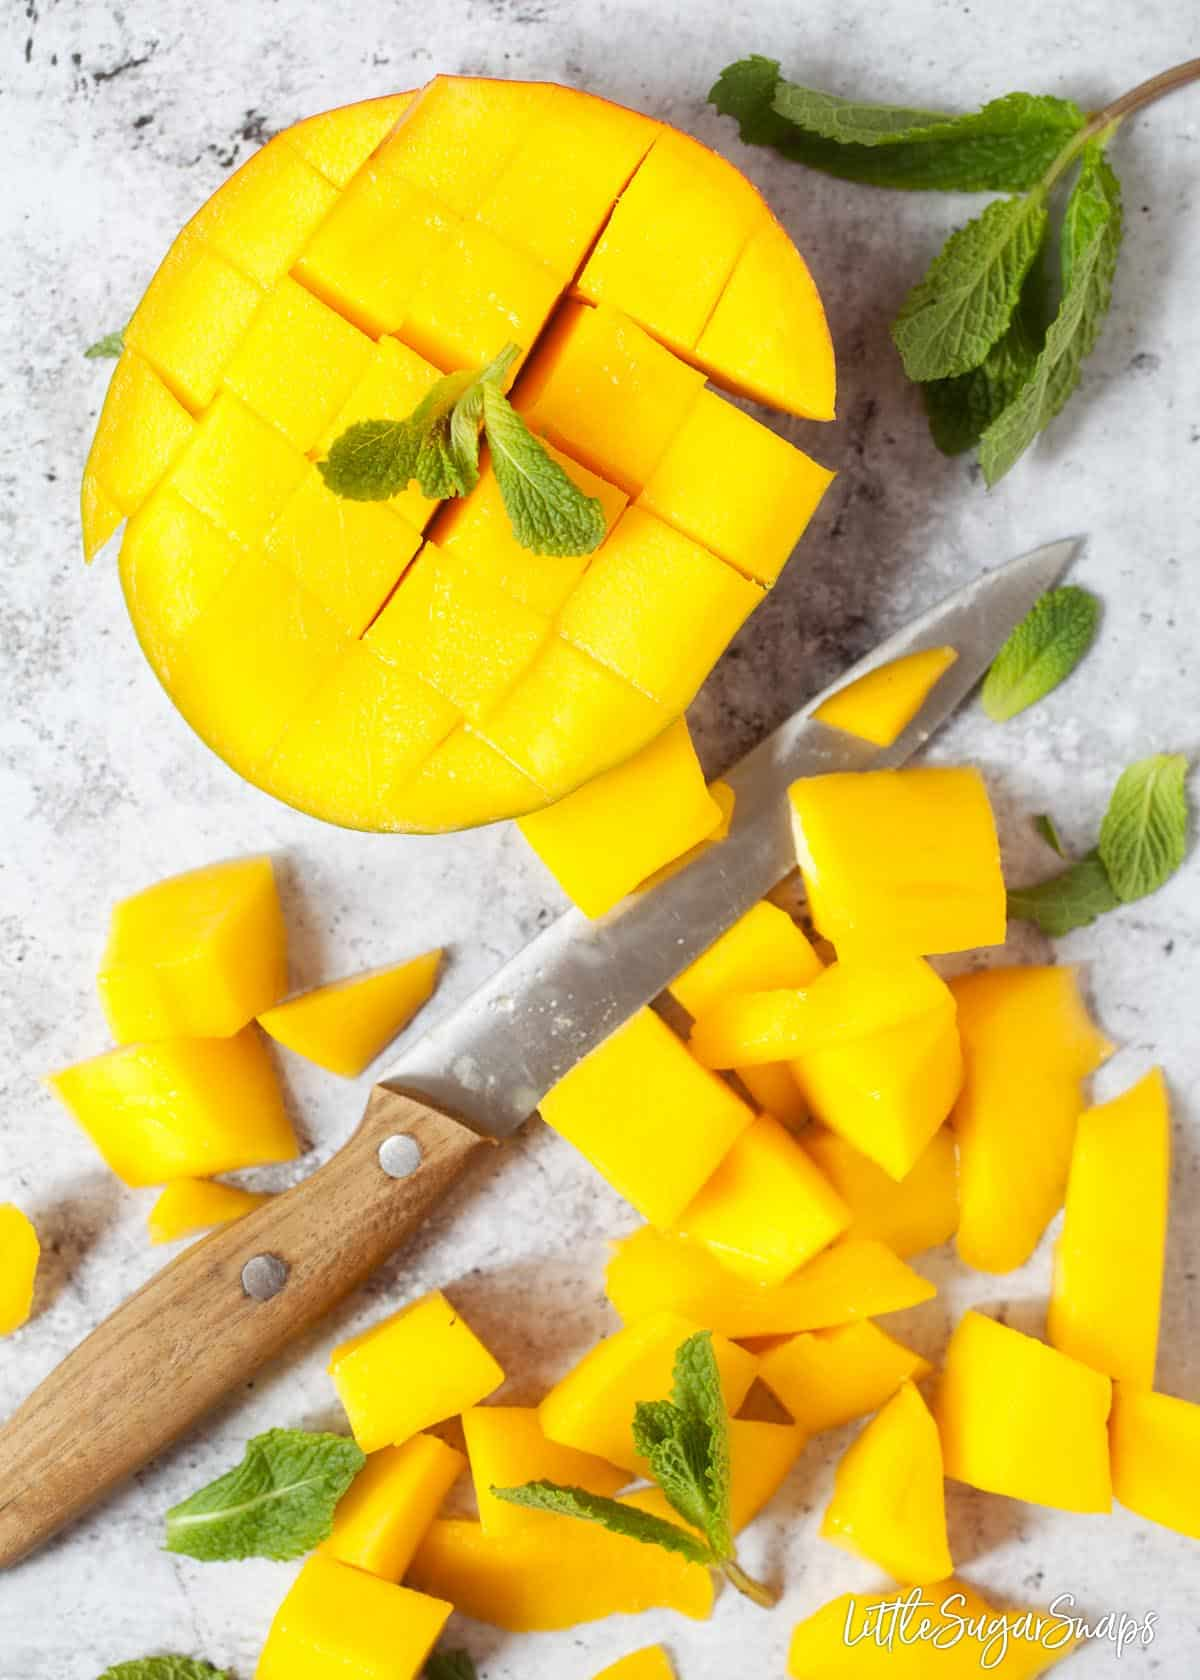 Chunks of mango and half a mango with cuts in it.